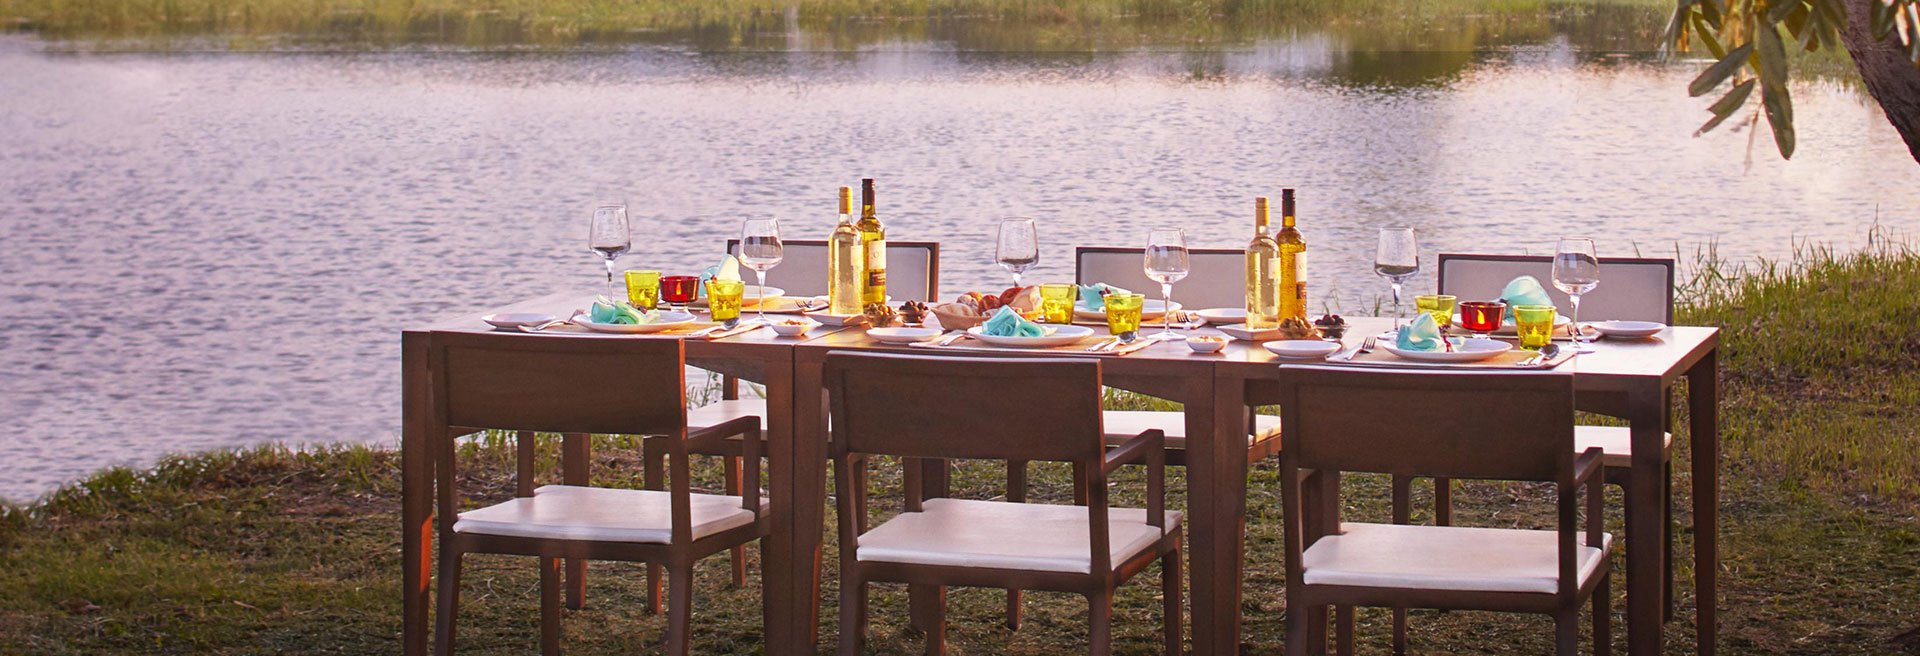 Table set by the lake - Signature dining